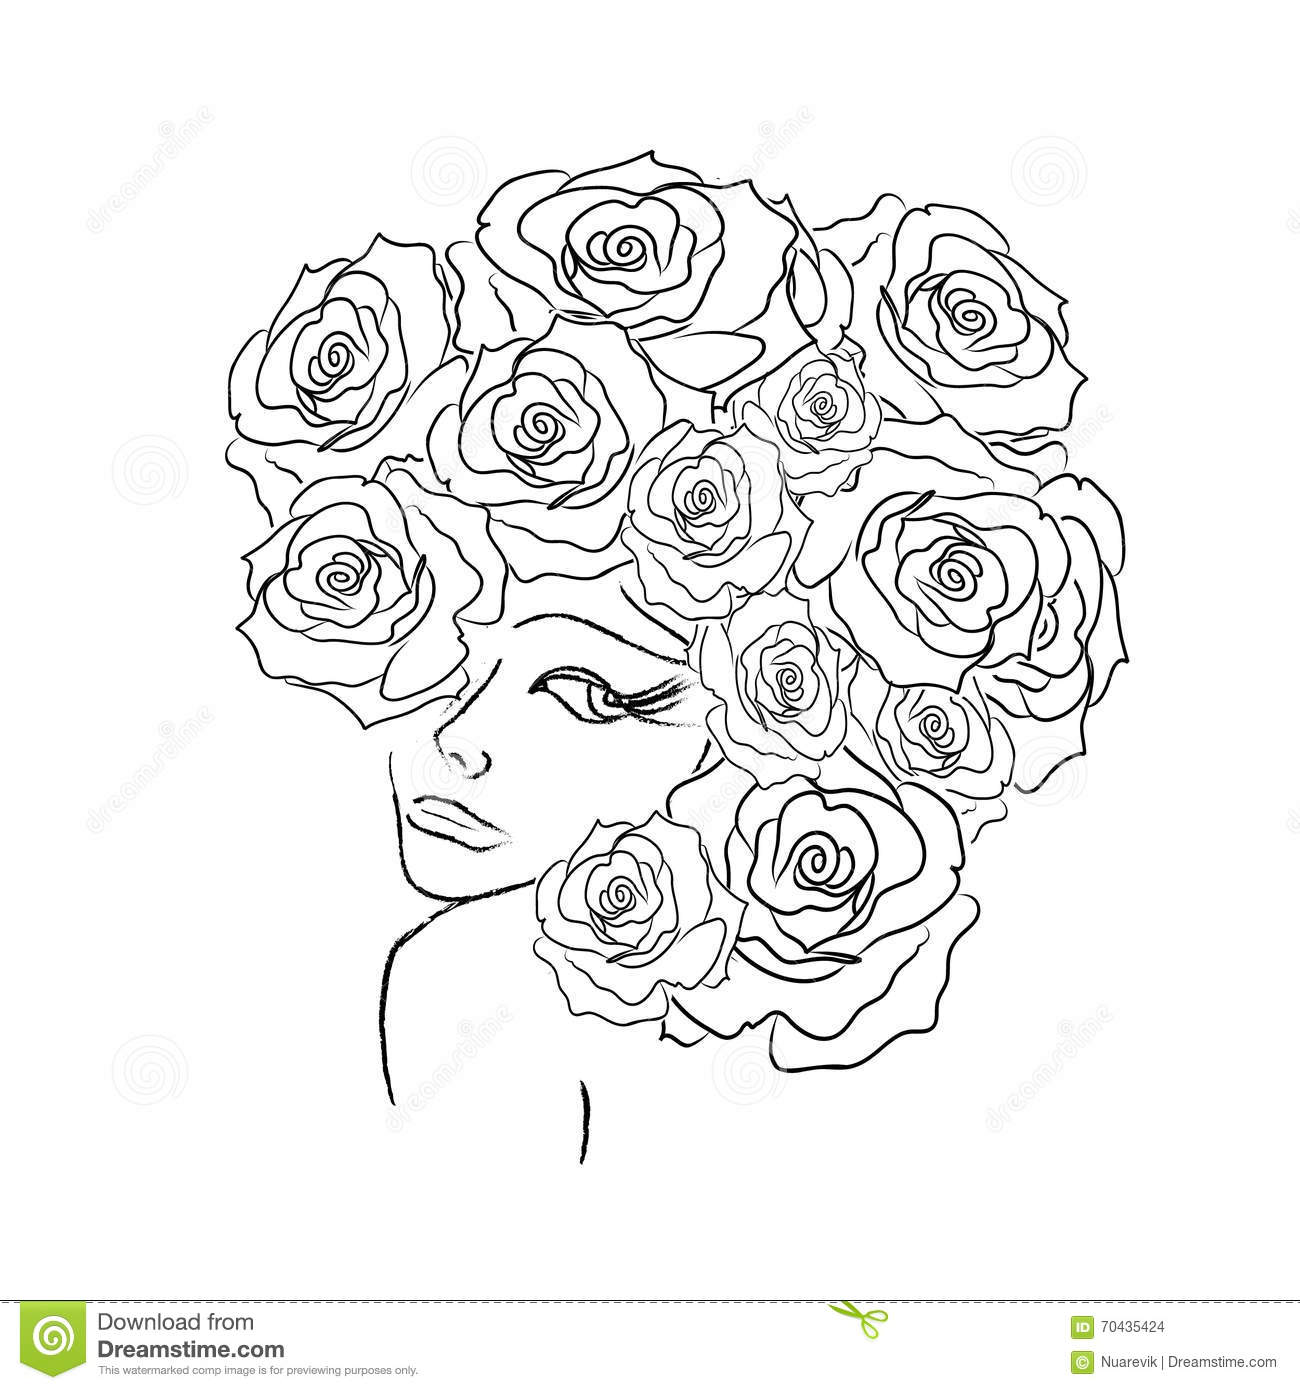 women coloring pages Women Head With Roses Decorative Coloring Page Stock Illustration  women coloring pages